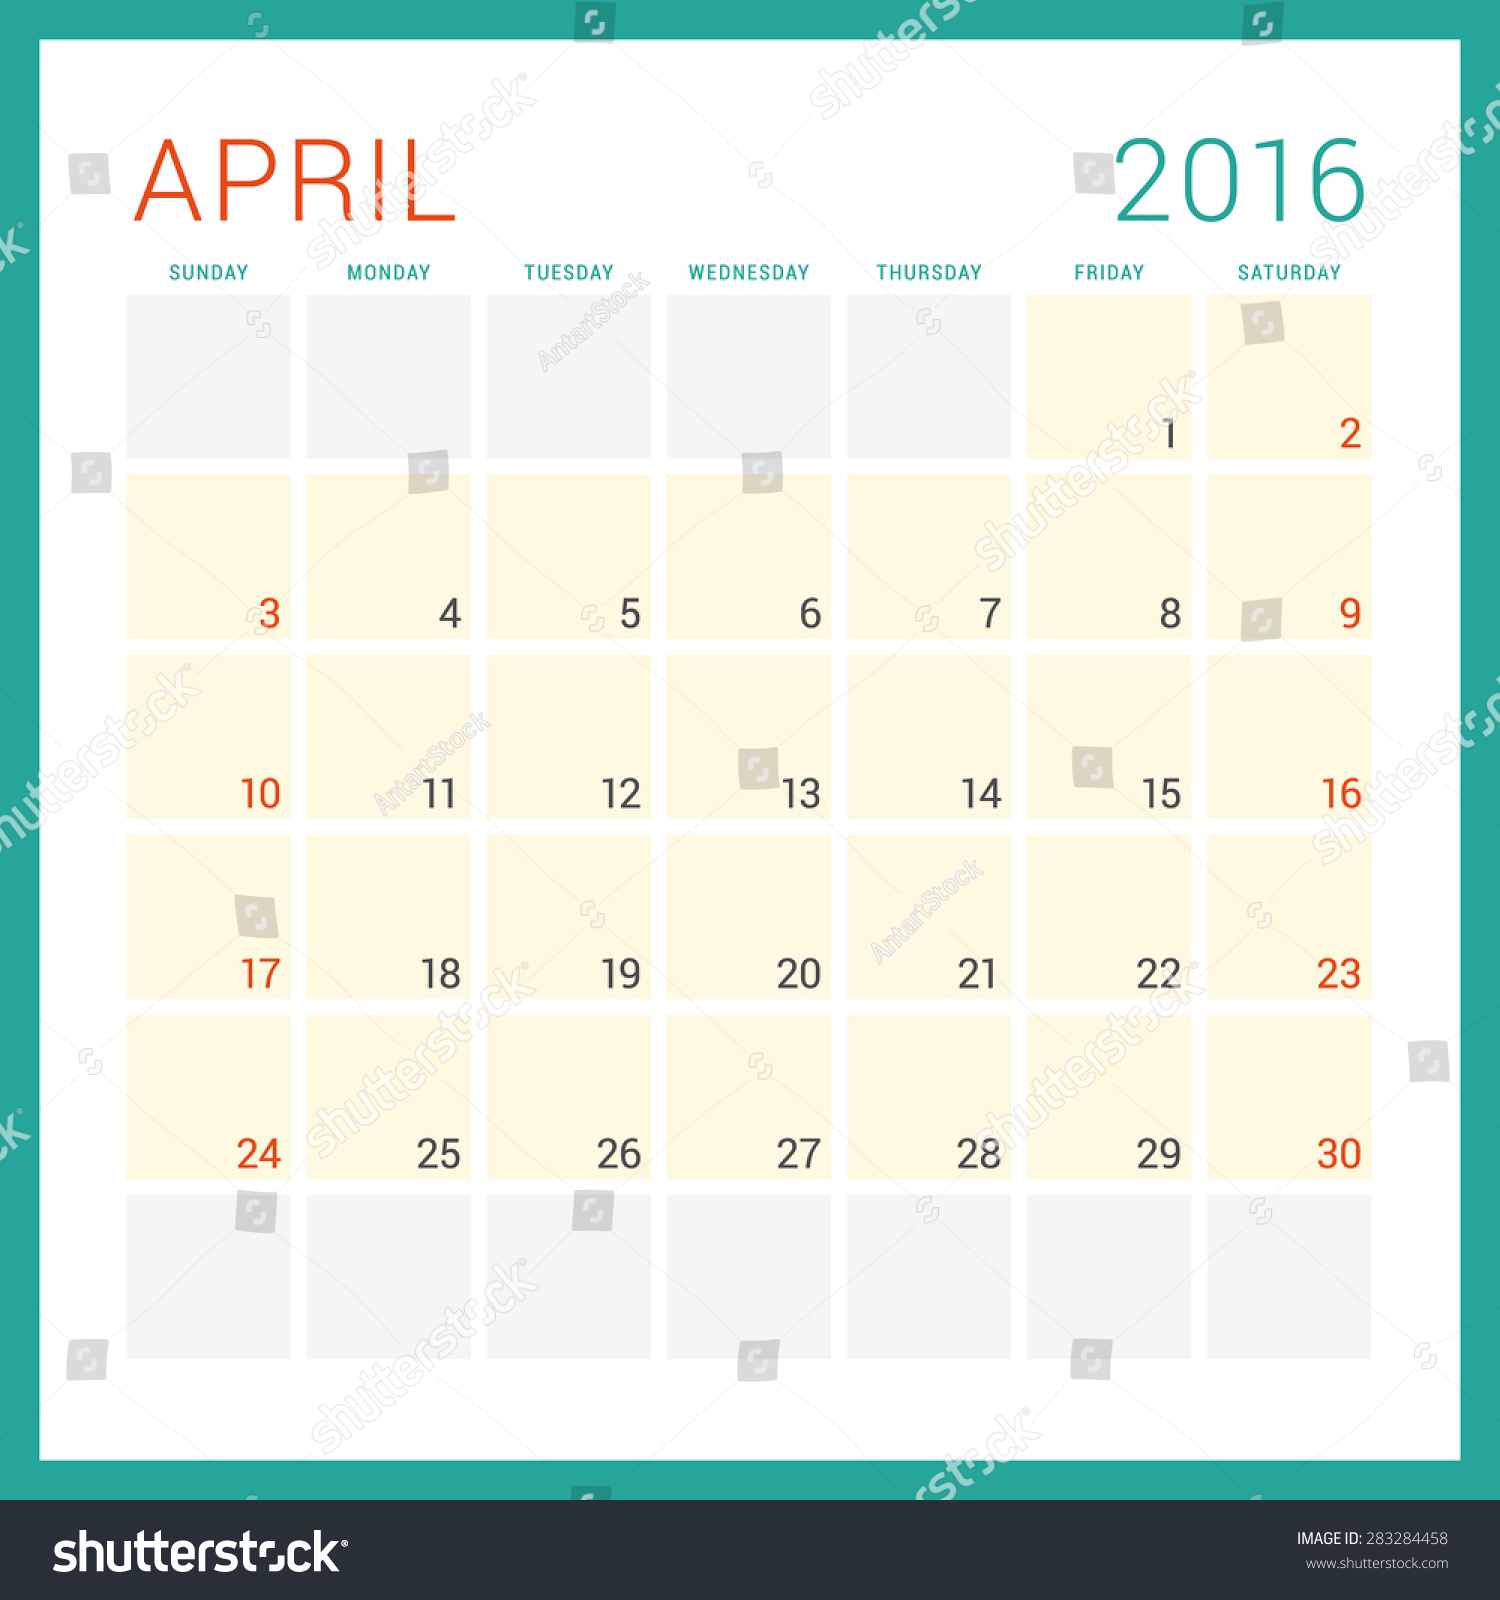 Calendar April Vector : Calendar vector flat design template april week